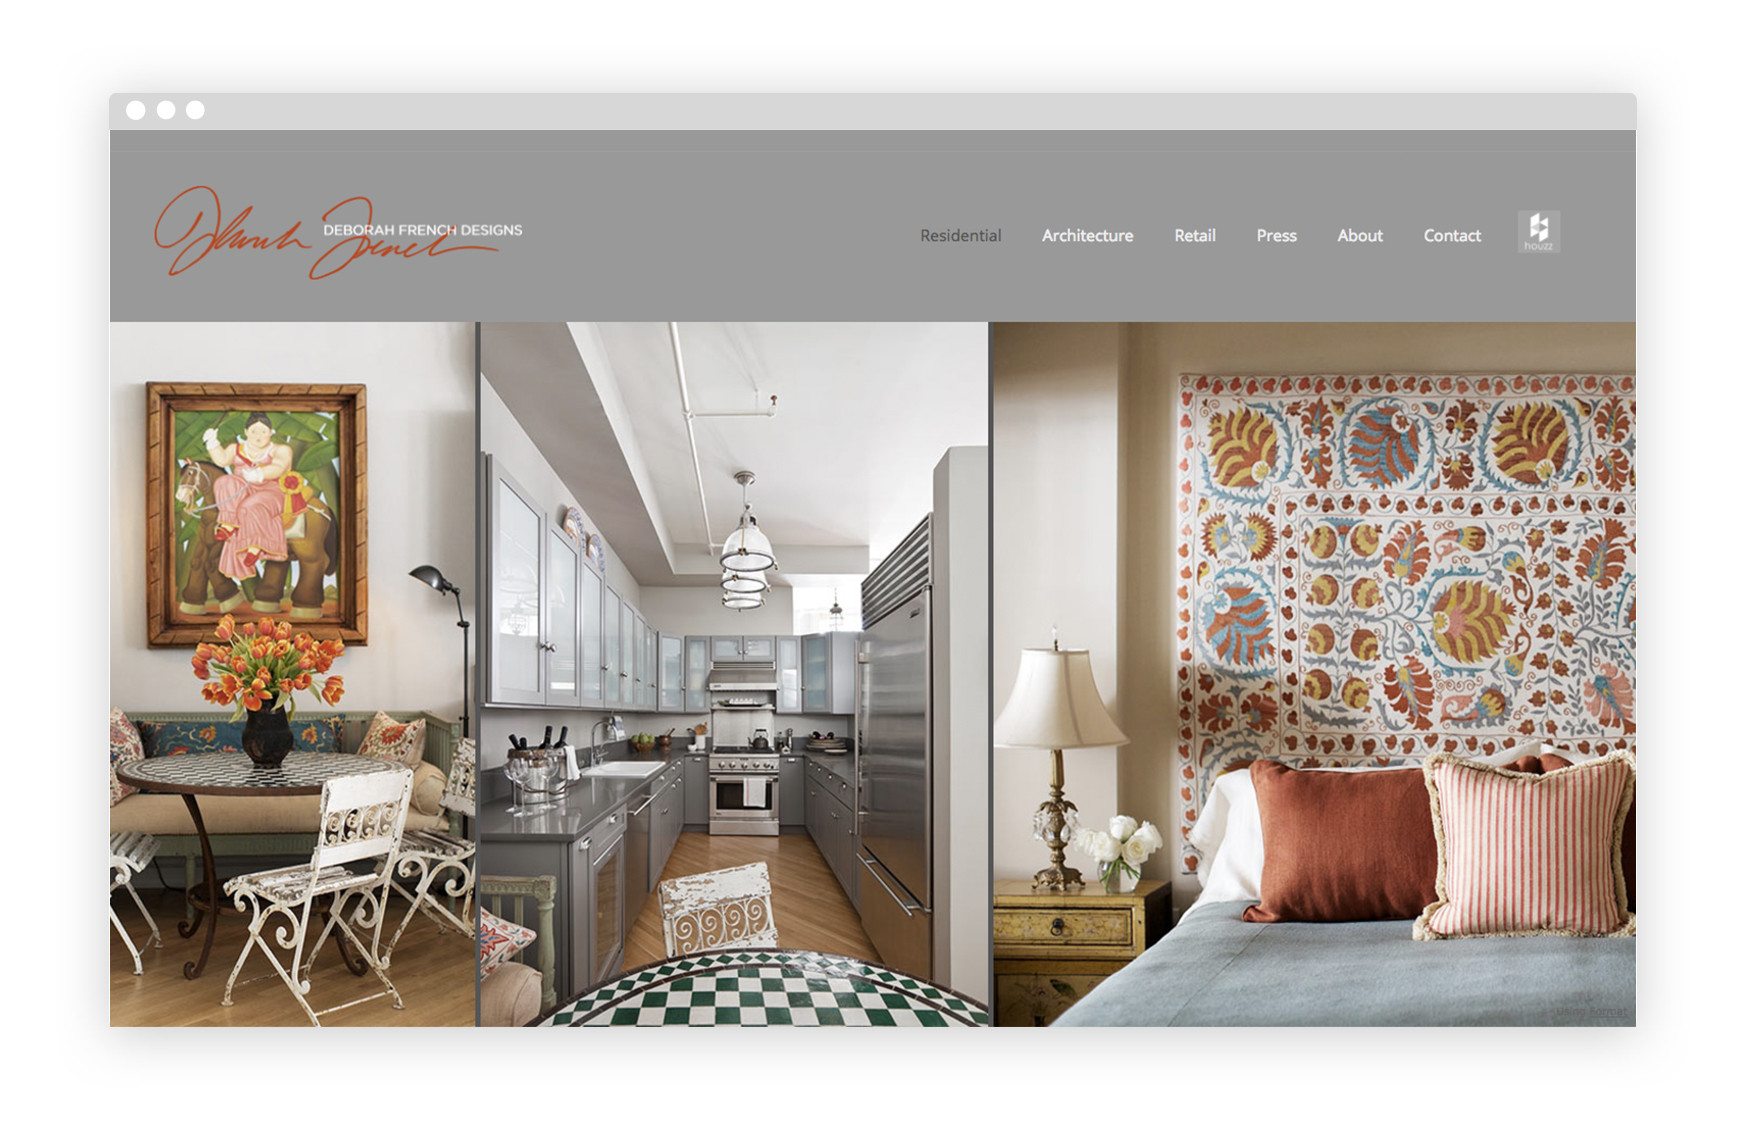 12 interior design portfolio website examples we love for Interior design portfolio examples